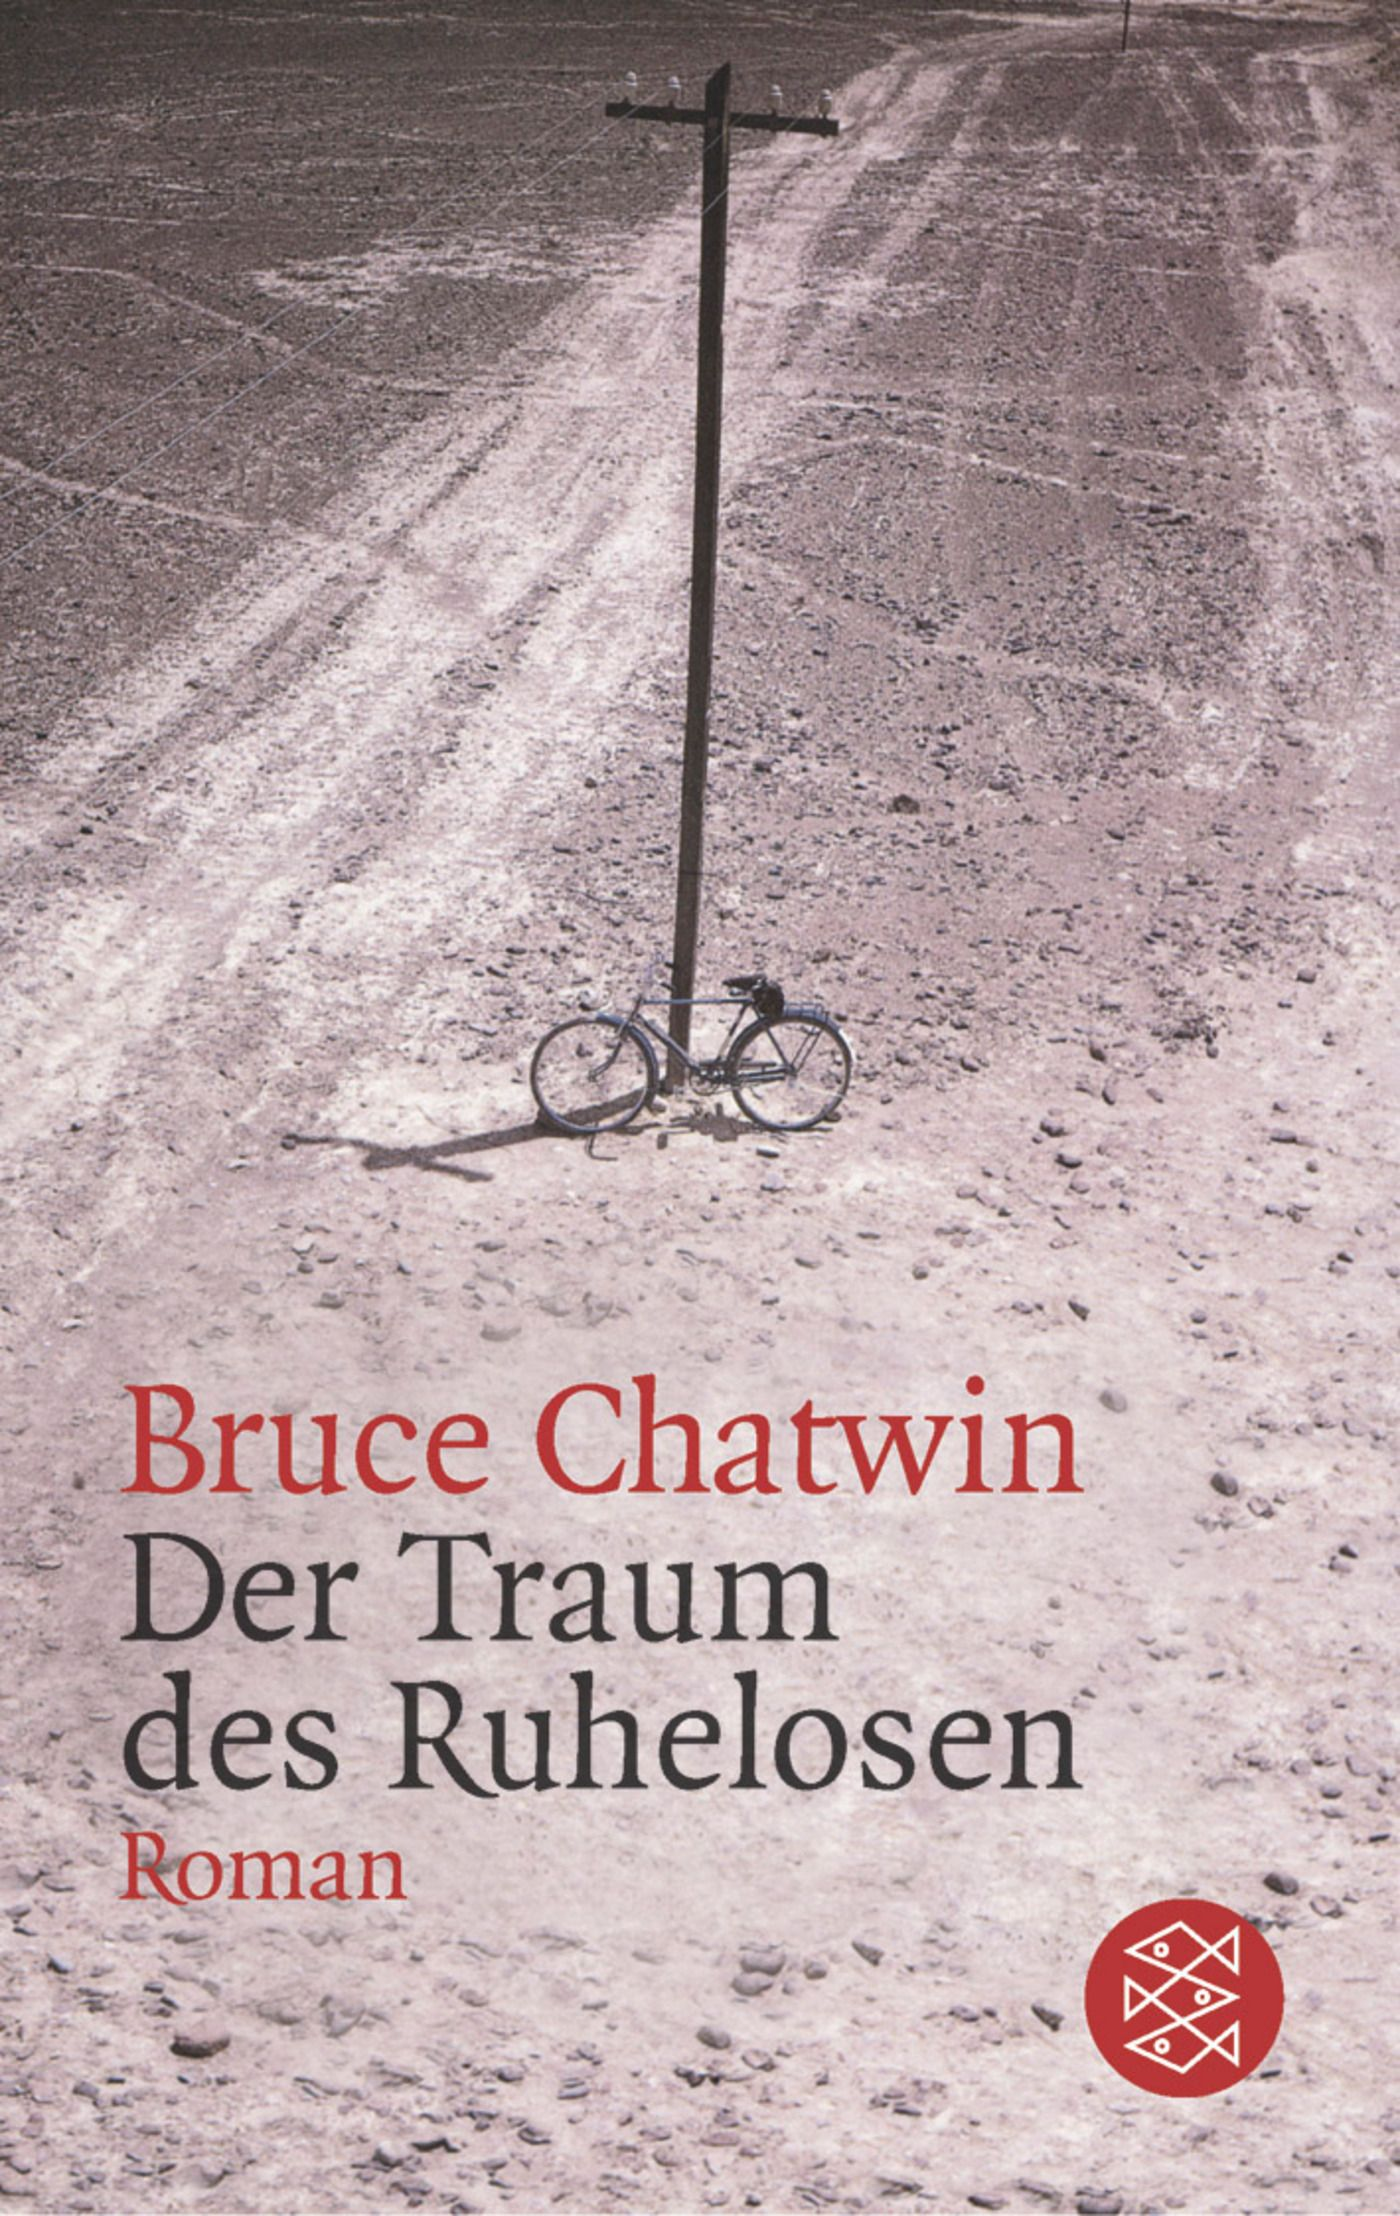 bruce chatwin essay Bruce chatwin: bruce chatwin, british writer who won international acclaim for books based on his nomadic life in 1966 chatwin abandoned a promising career as a.